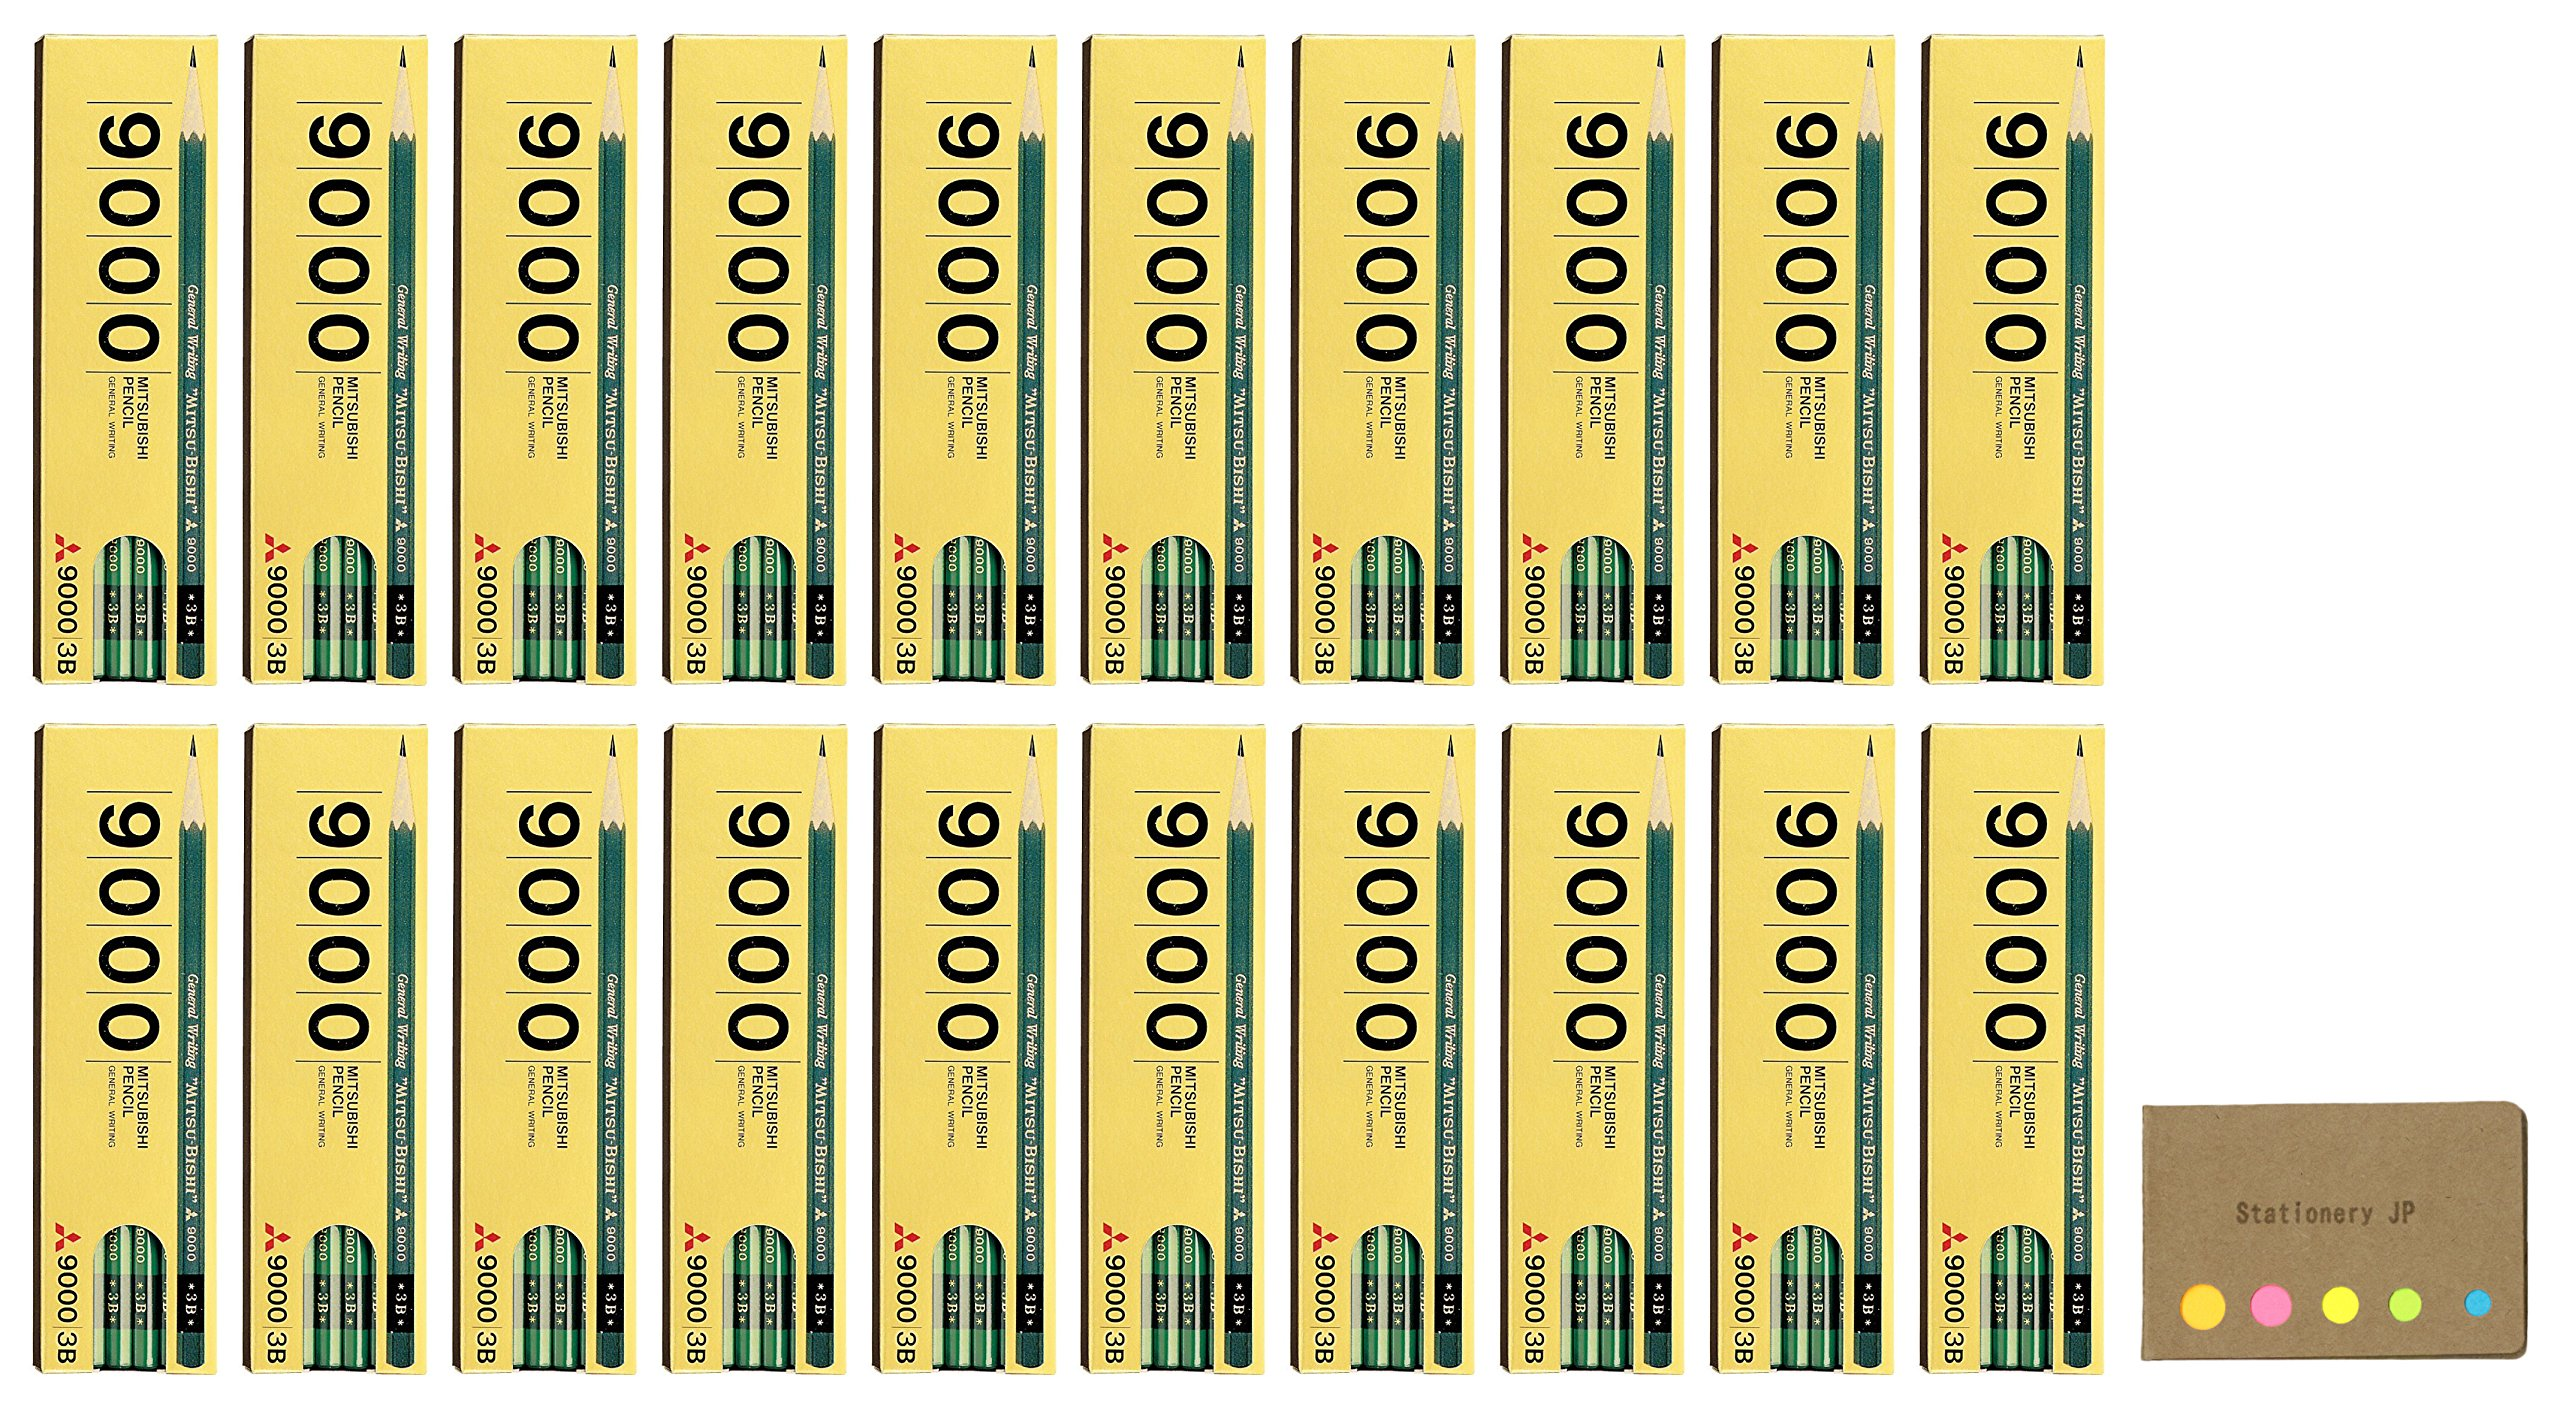 Uni Mitsubishi 9000 Pencil, 3B, 20-pack/total 240 pcs, Sticky Notes Value Set by Stationery JP (Image #1)